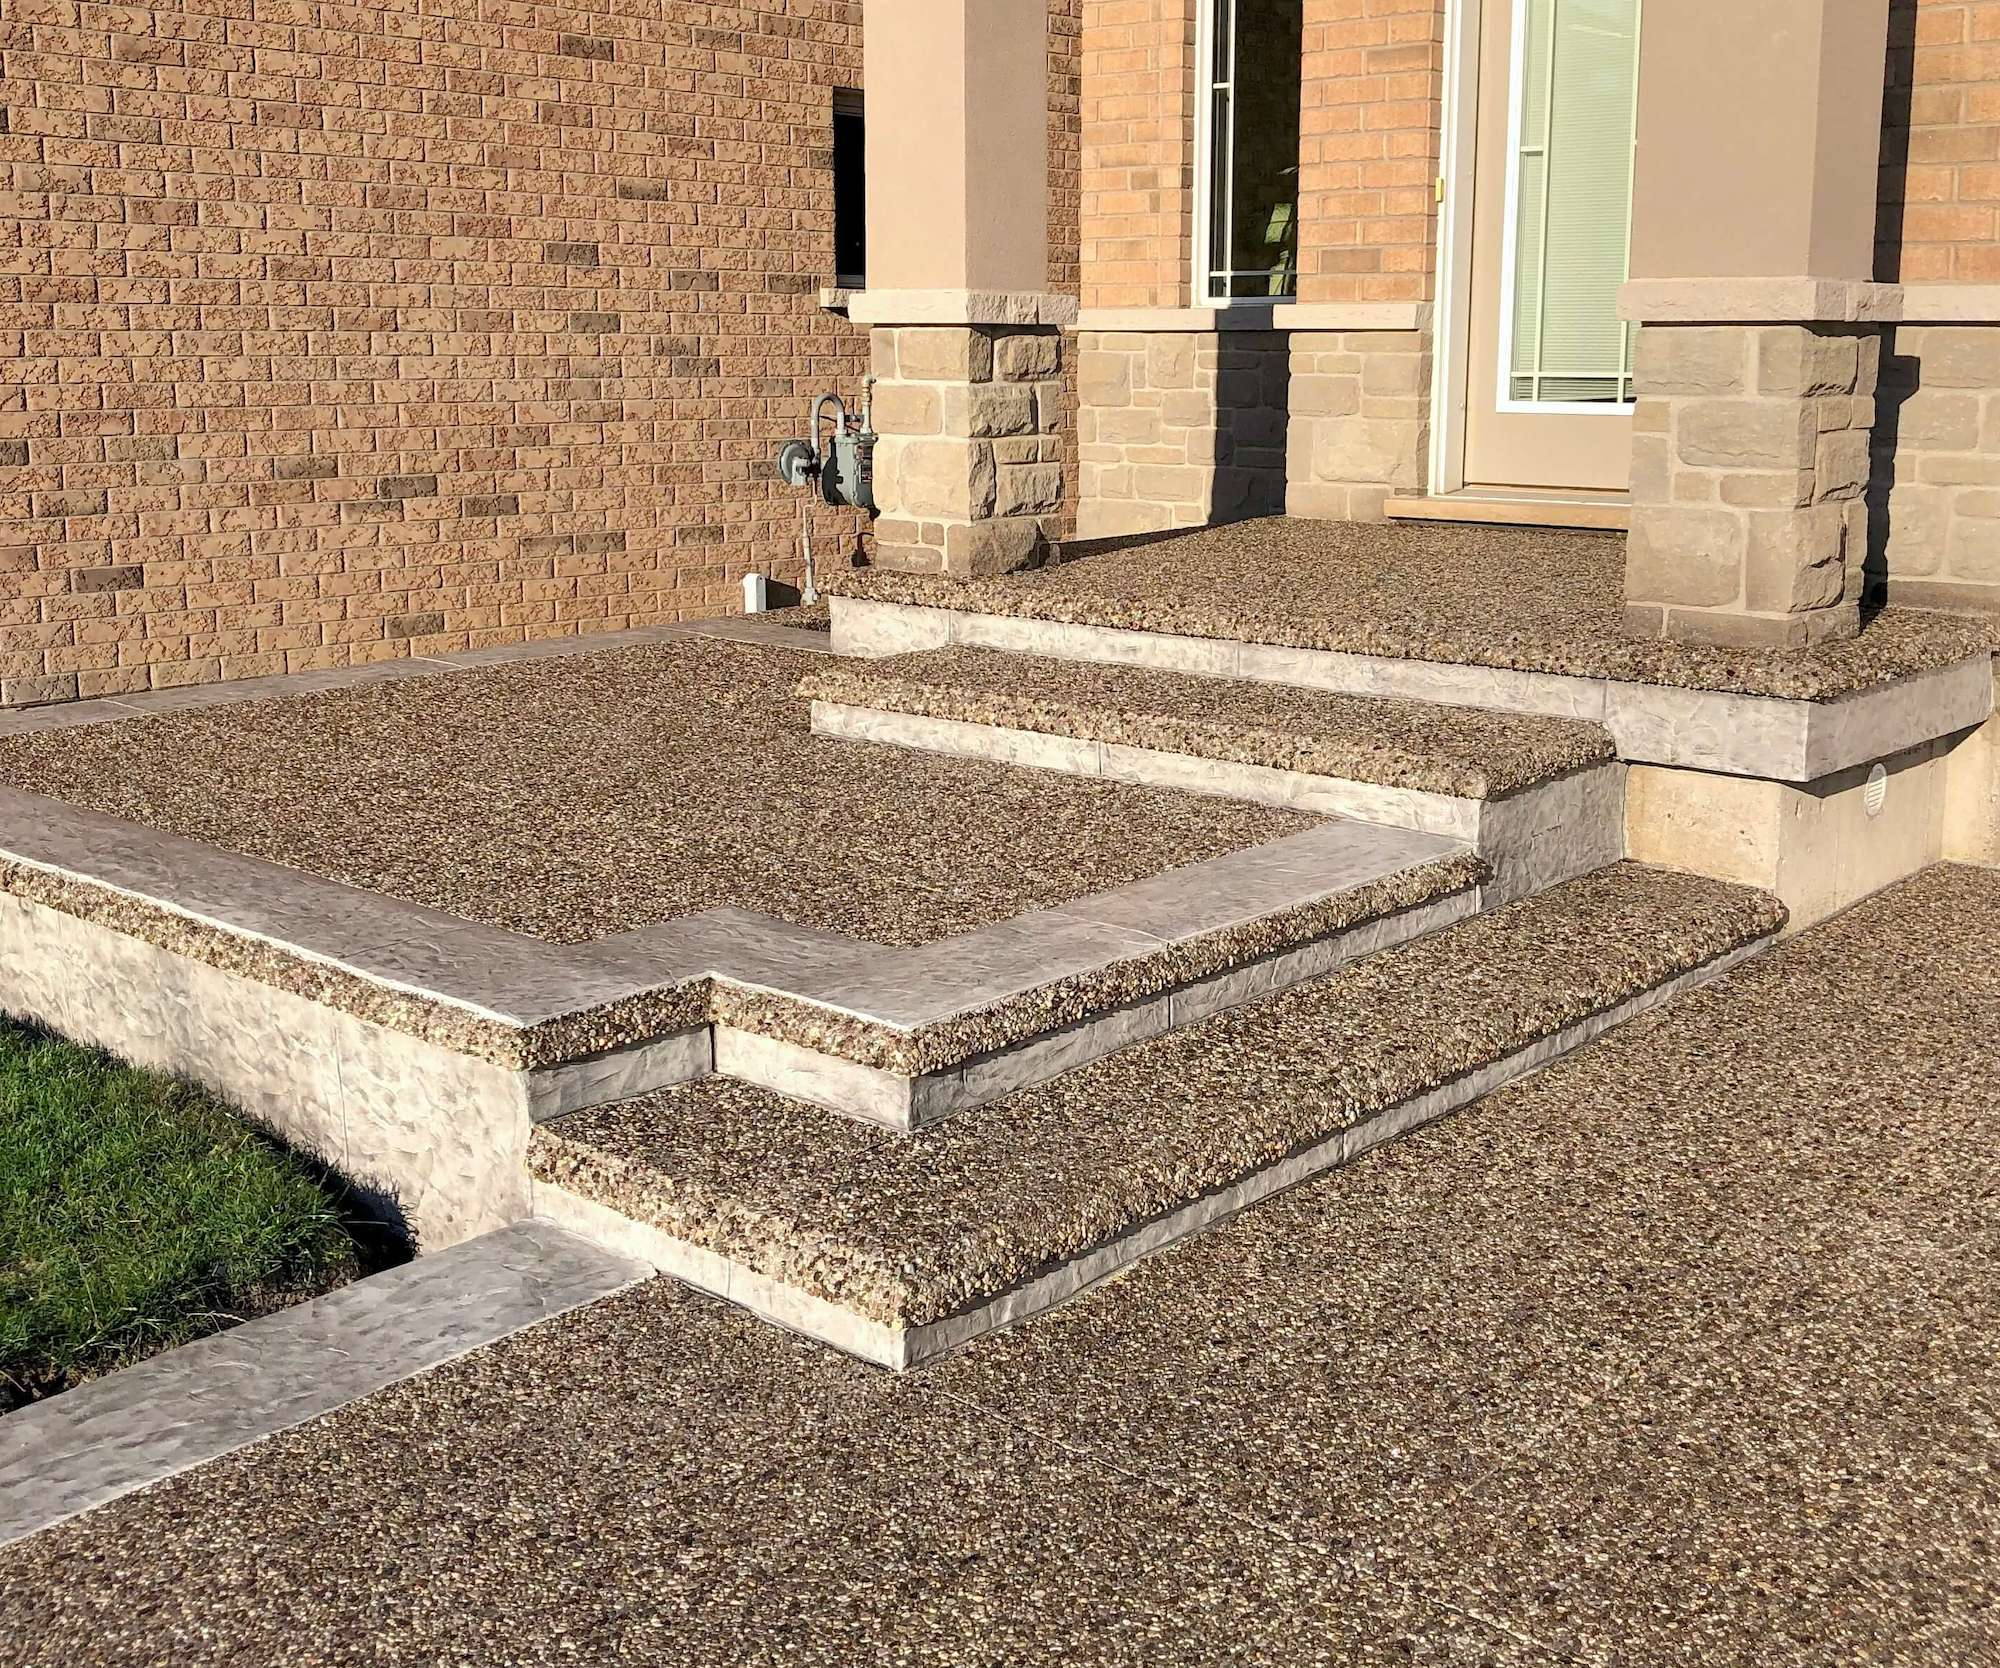 Exposed Aggregate Steps with Ash White Risers/Border